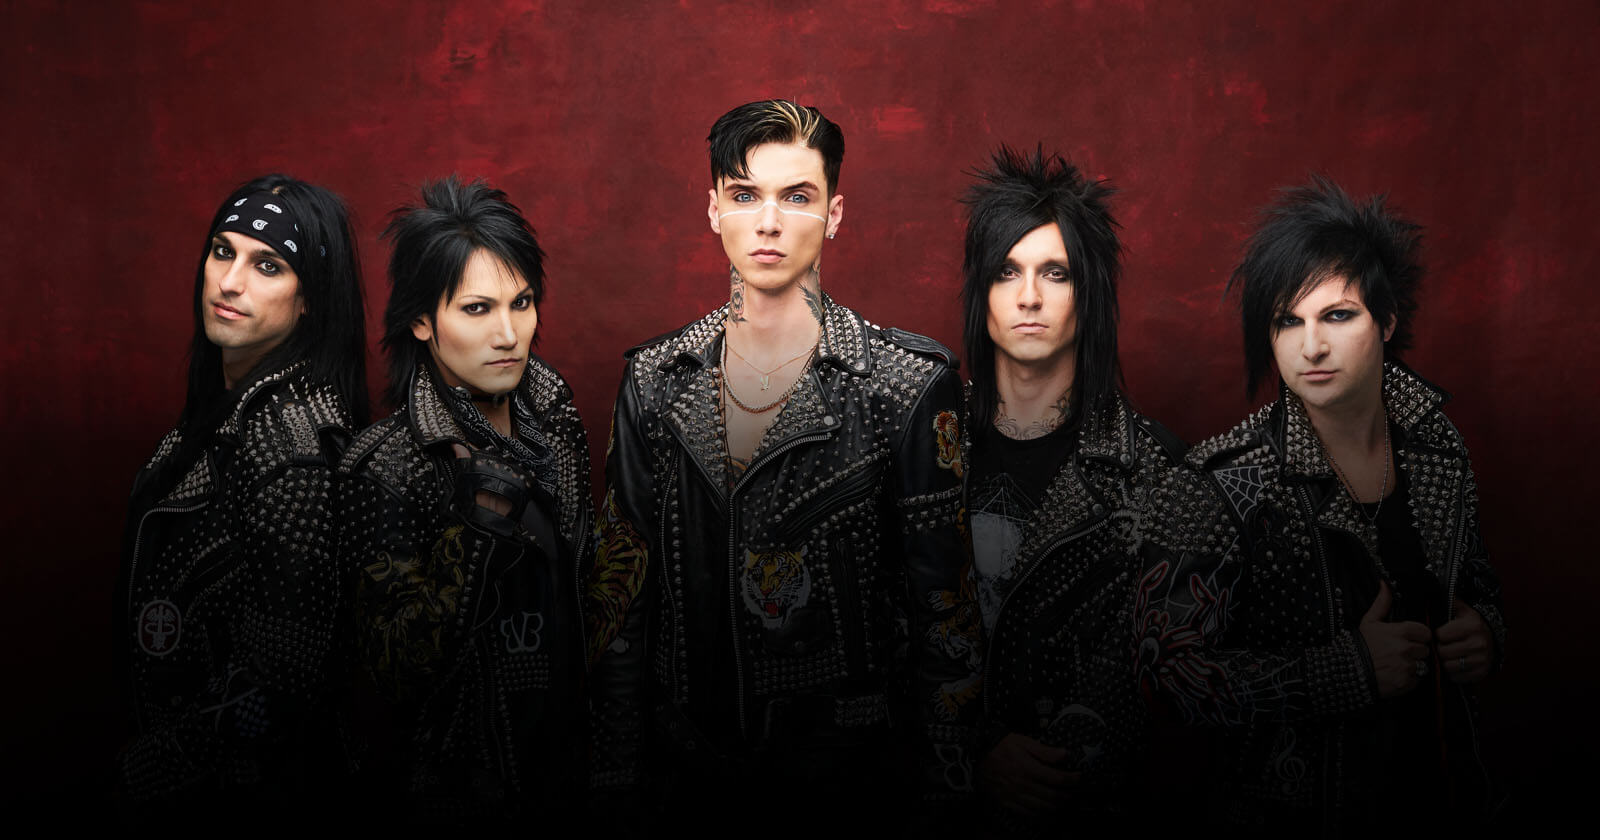 Black Veil Brides Tour Dates 2020 Black Veil Brides | Upcoming Dates